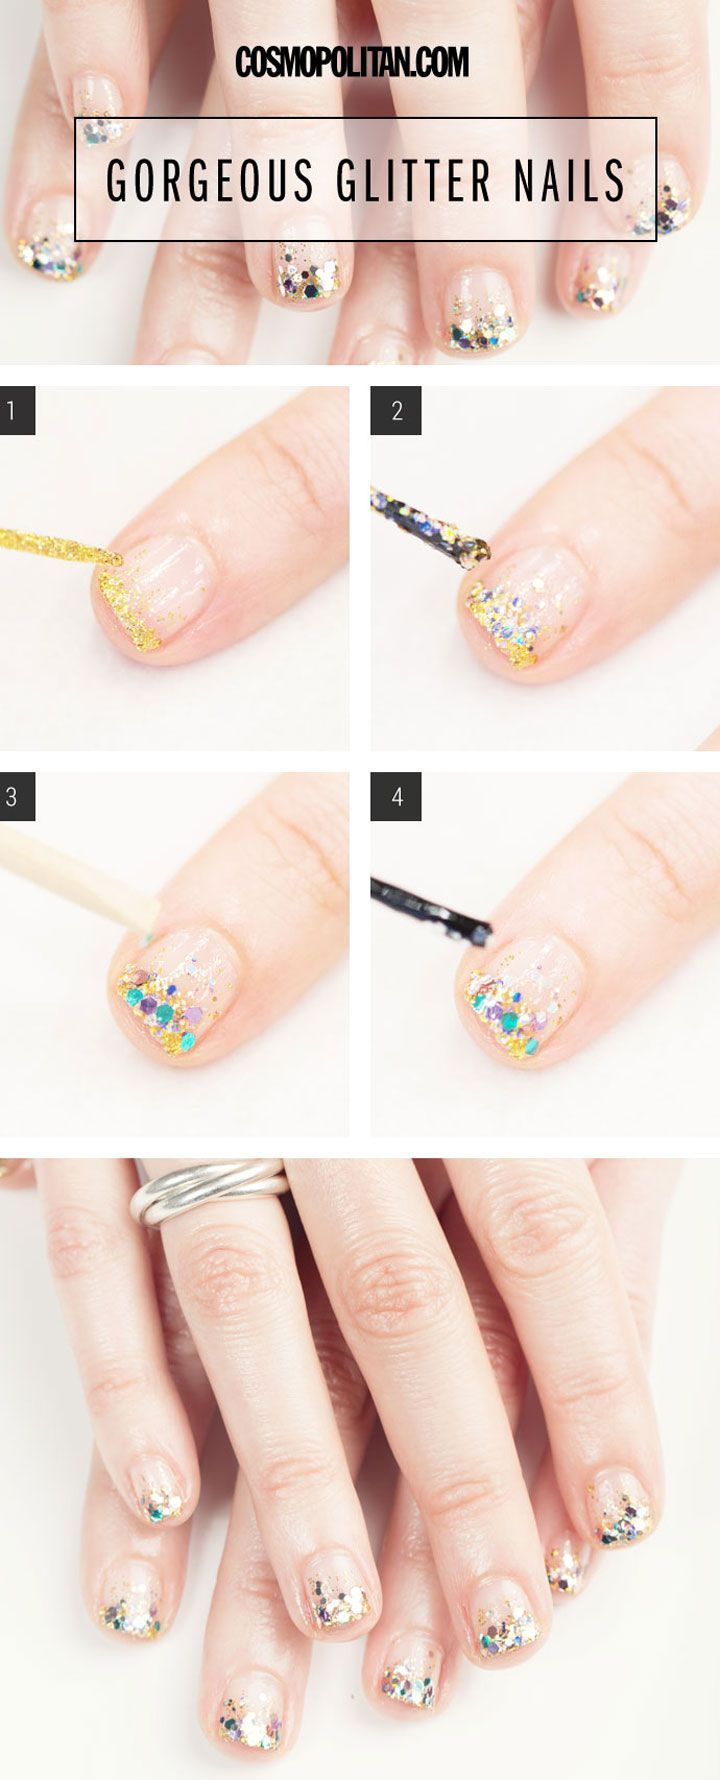 15 best Nails images on Pinterest | Beauty, Cute nails and ...